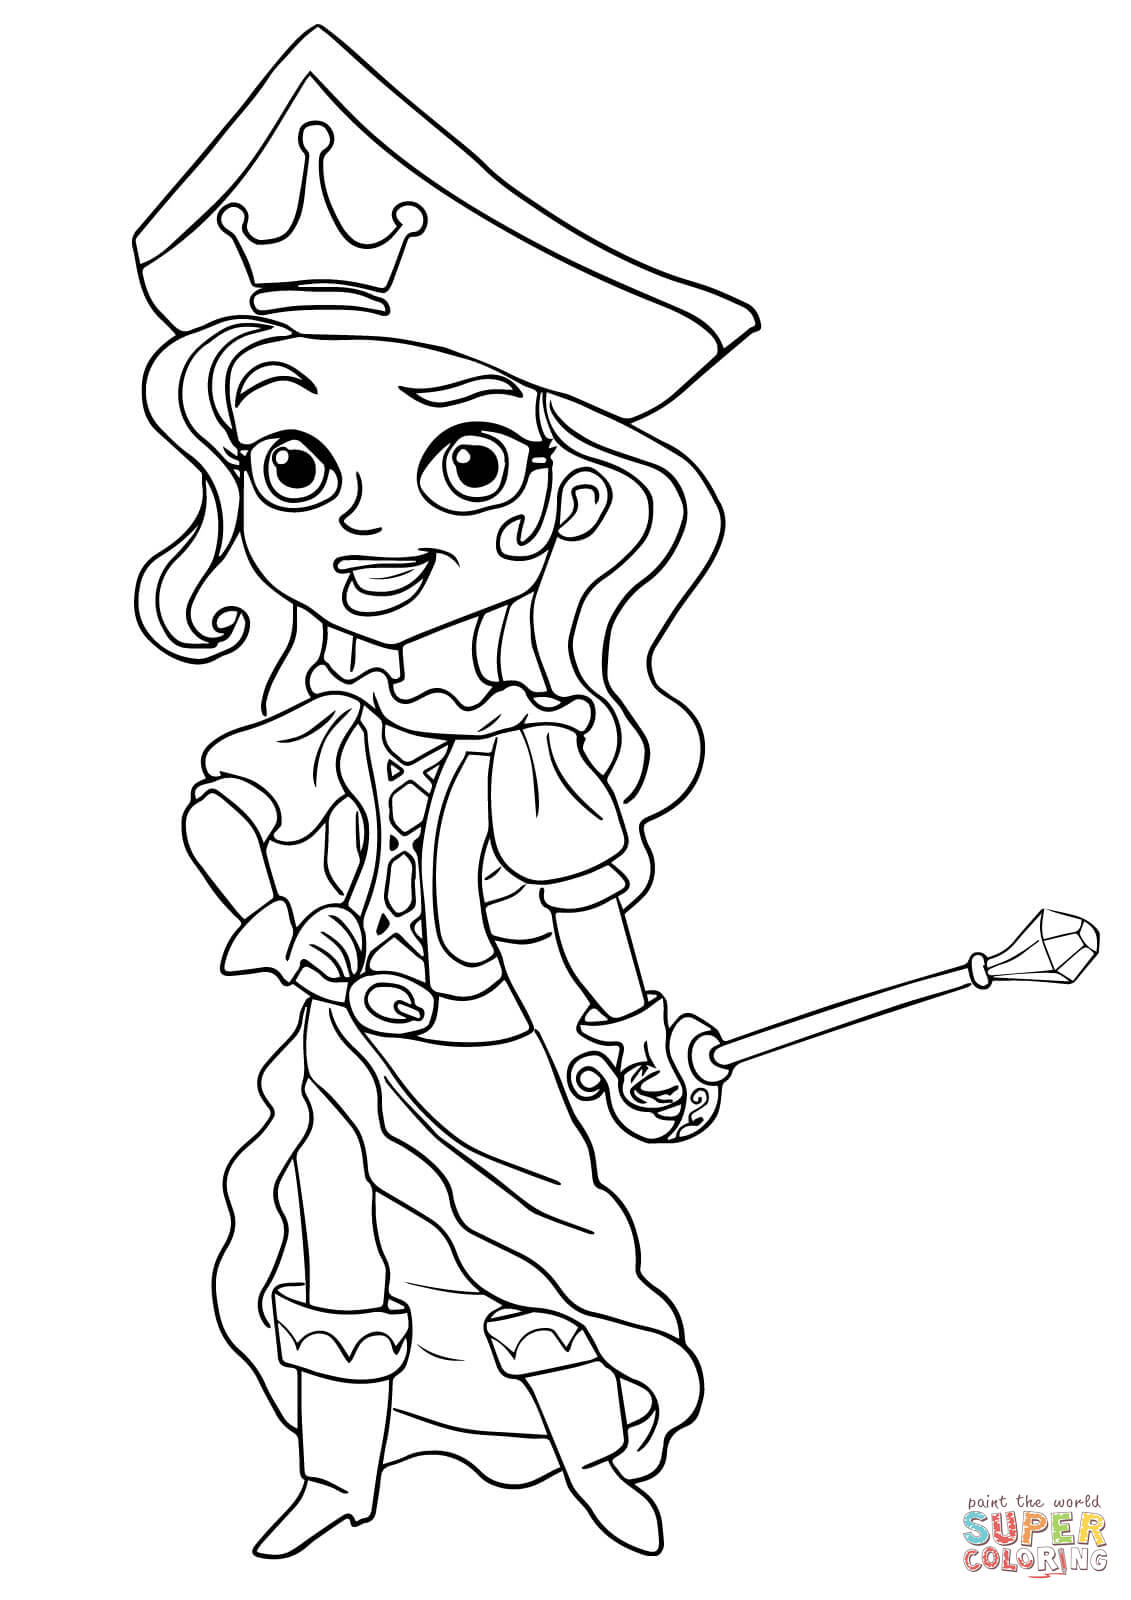 the pirate princess coloring page free printable coloring pages